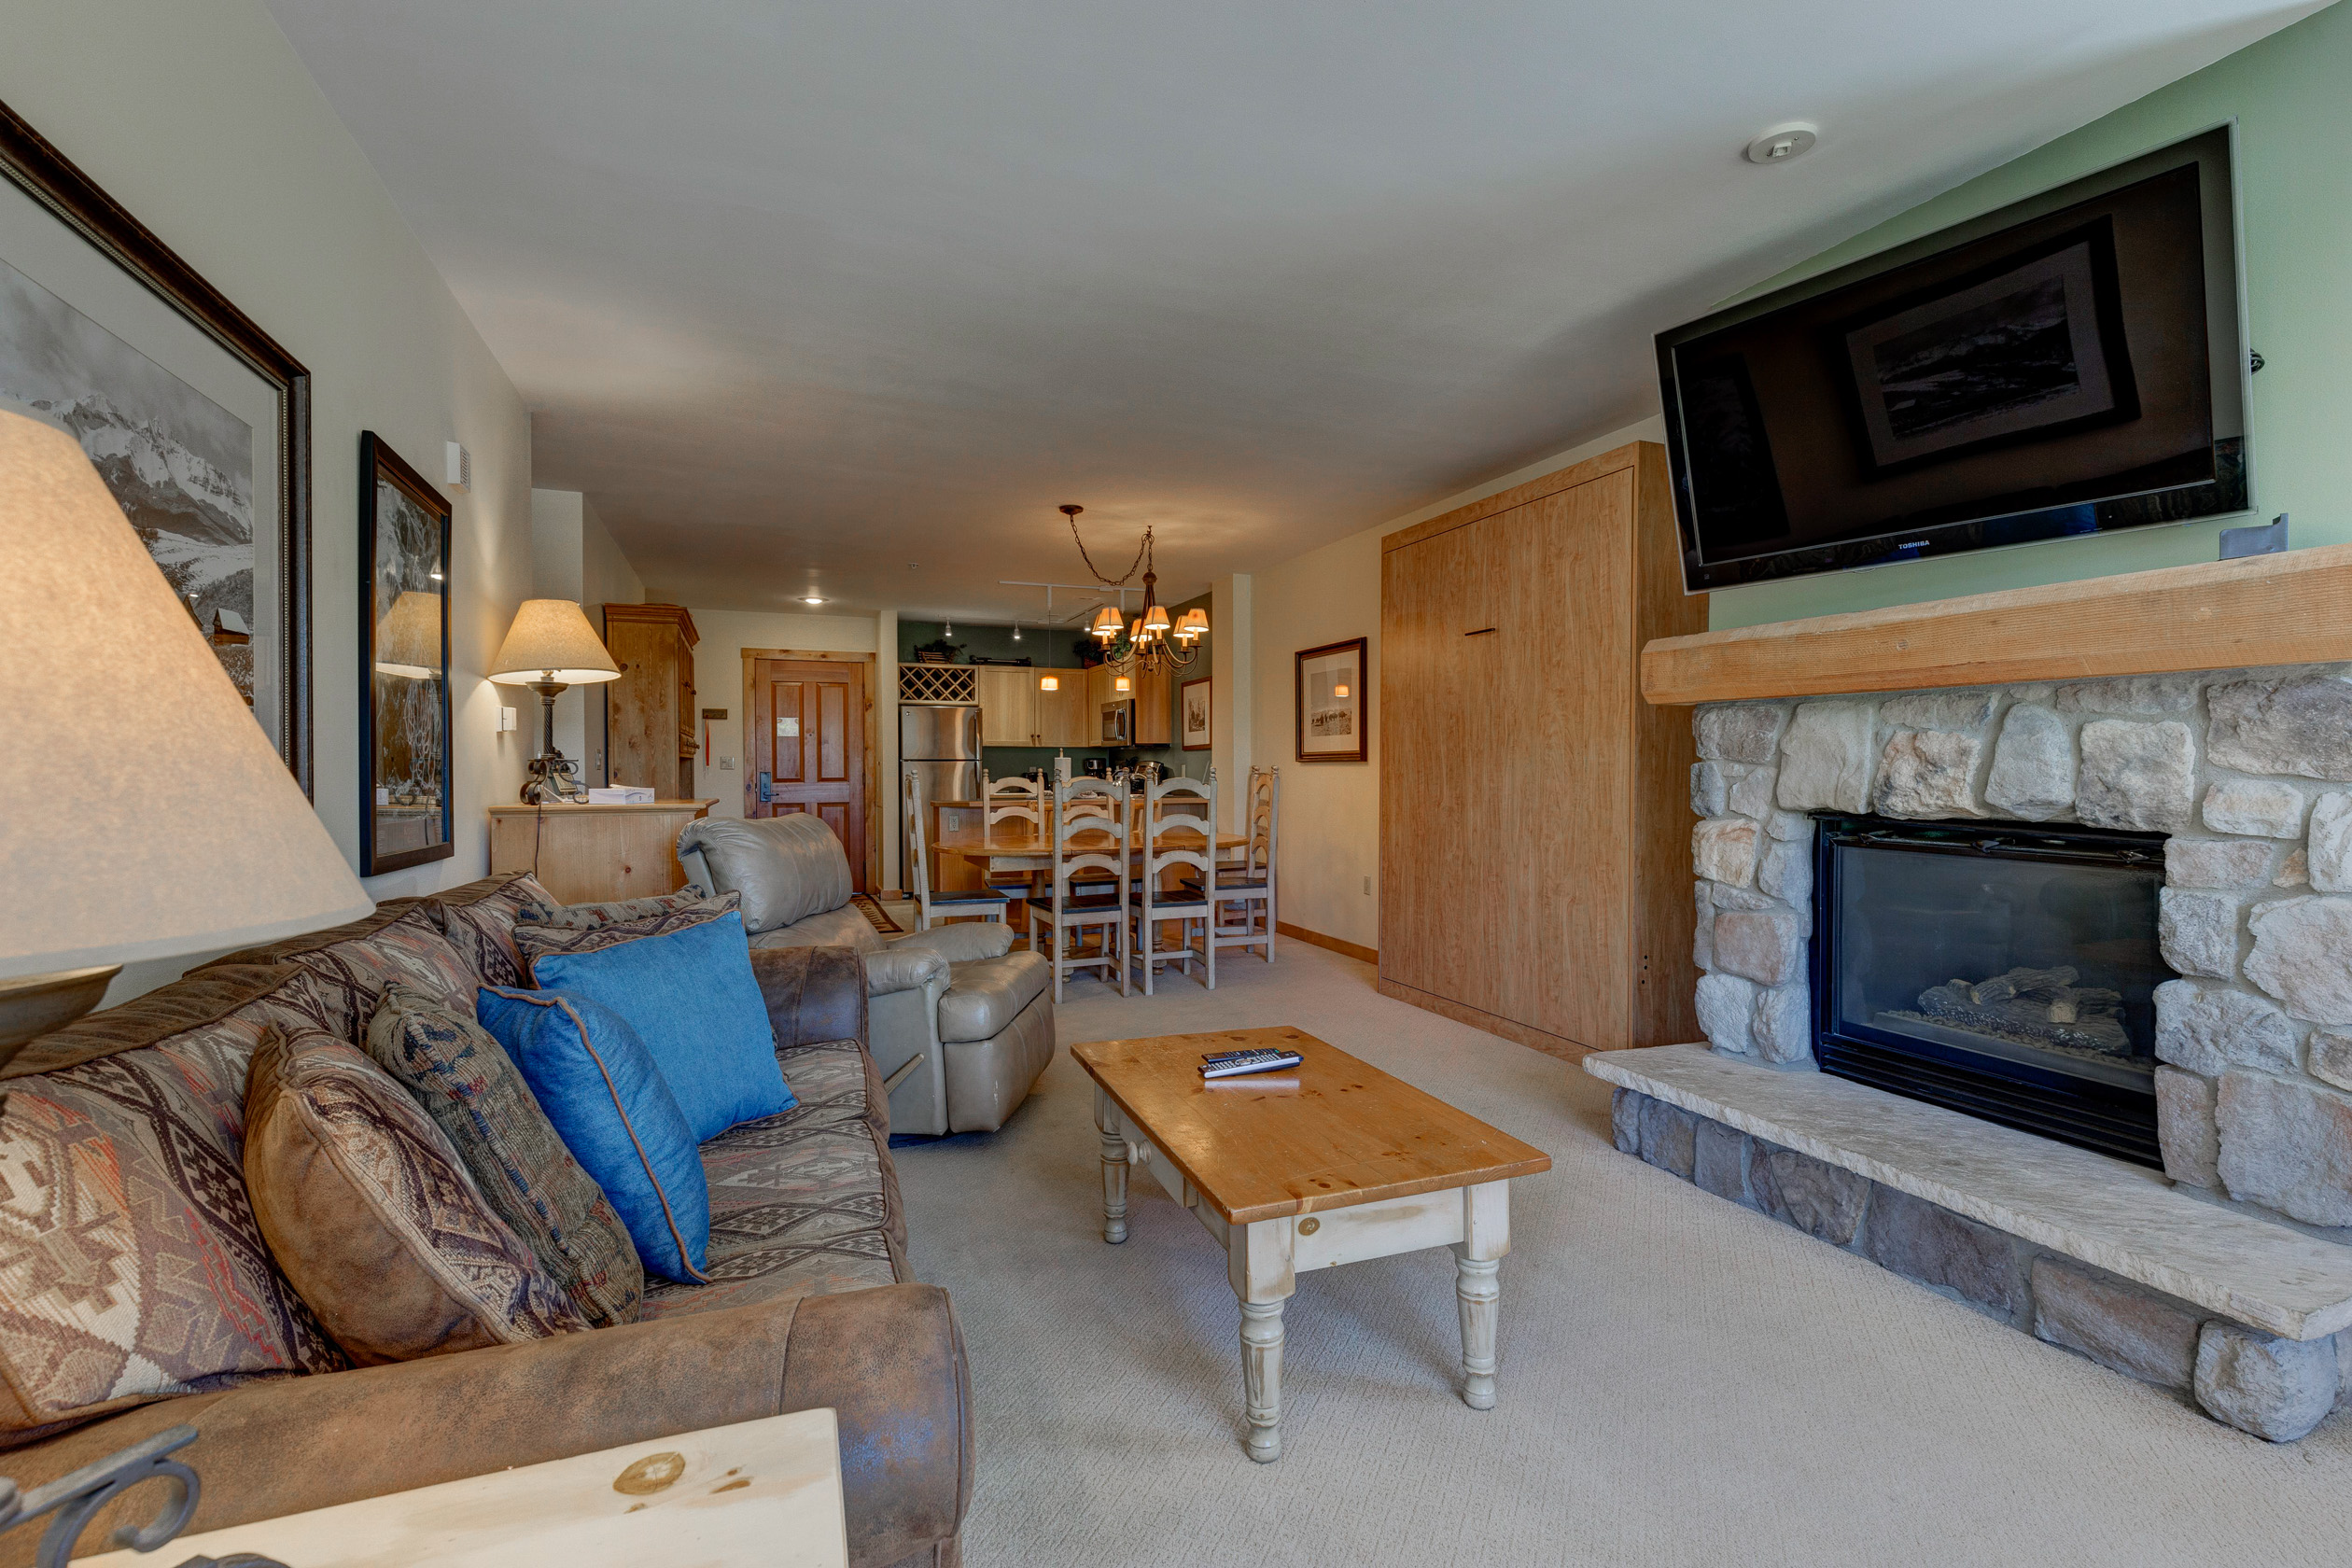 The living area features a mounted flat screen TV, beautiful gas fireplace and queen-sized sleeper sofa.